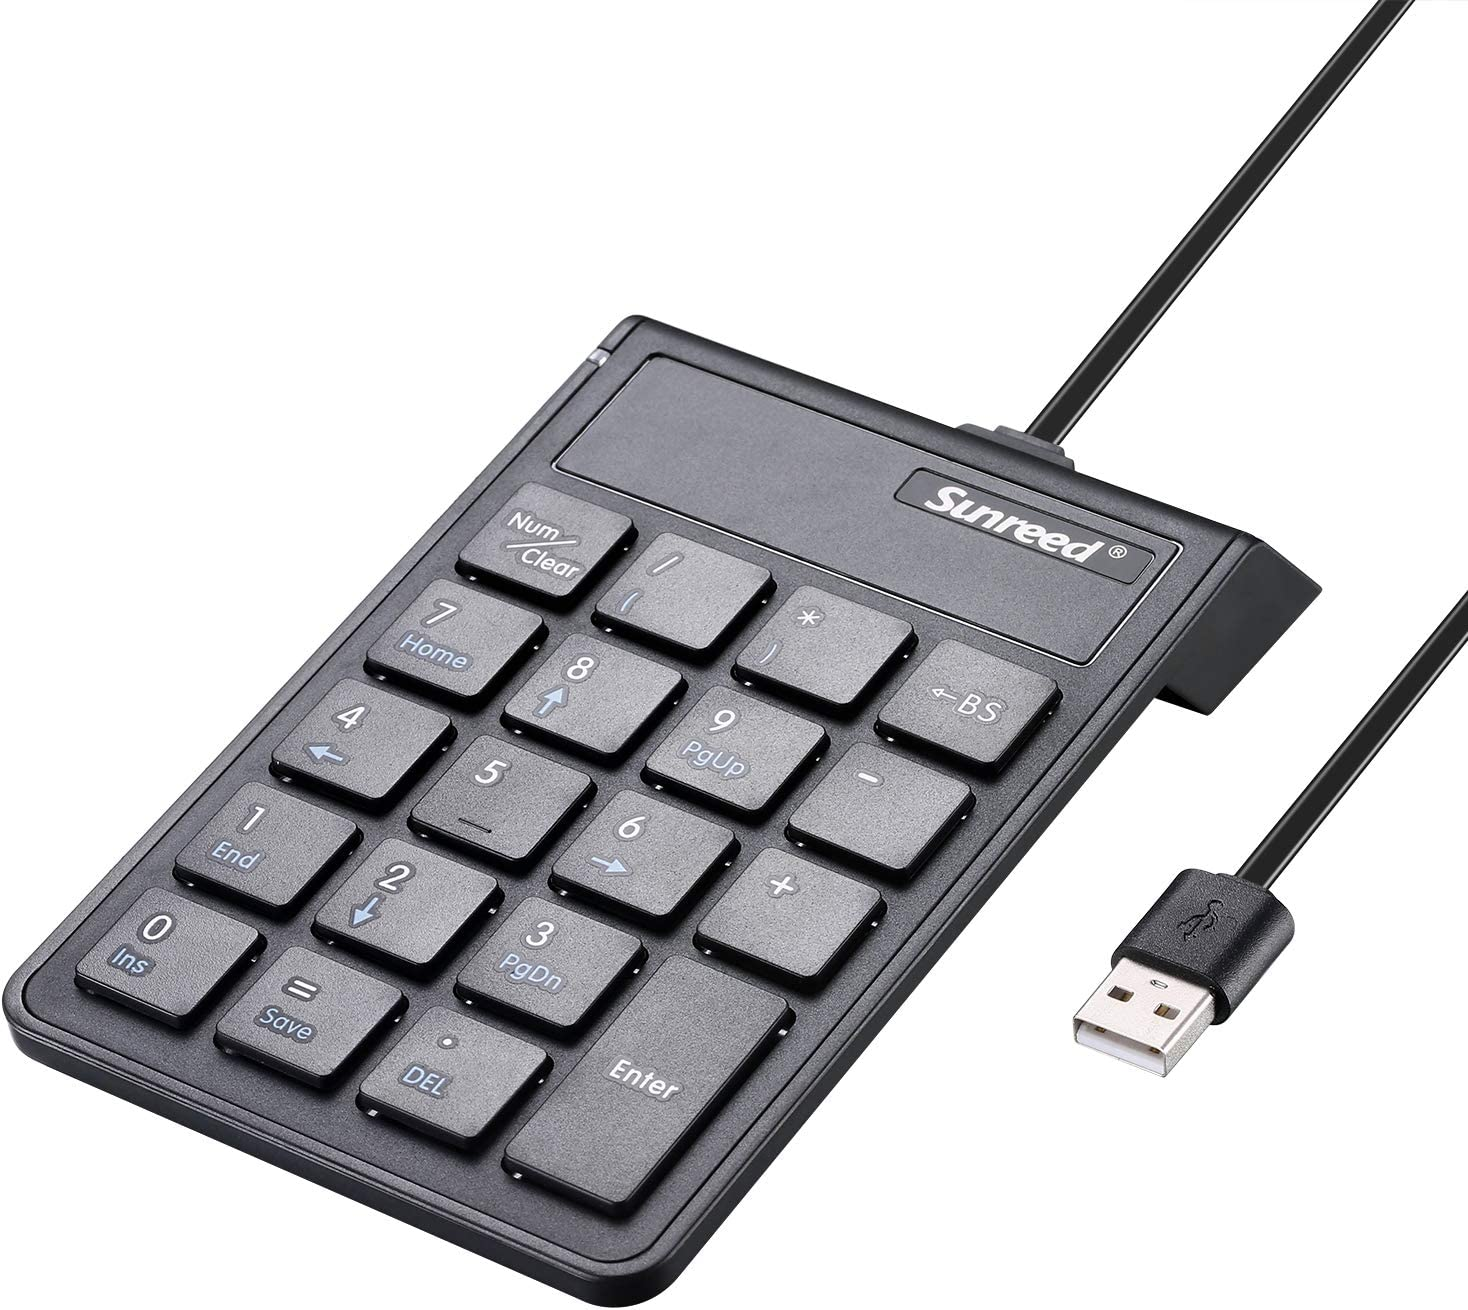 PROODI Number Pad, Ultra-Thin Portable USB Numeric Keypad Keyboard for Laptop Computer and Microsoft Surface, Windows OS, Mac OS, Chrome OS, iOS, Android OS, with = Key